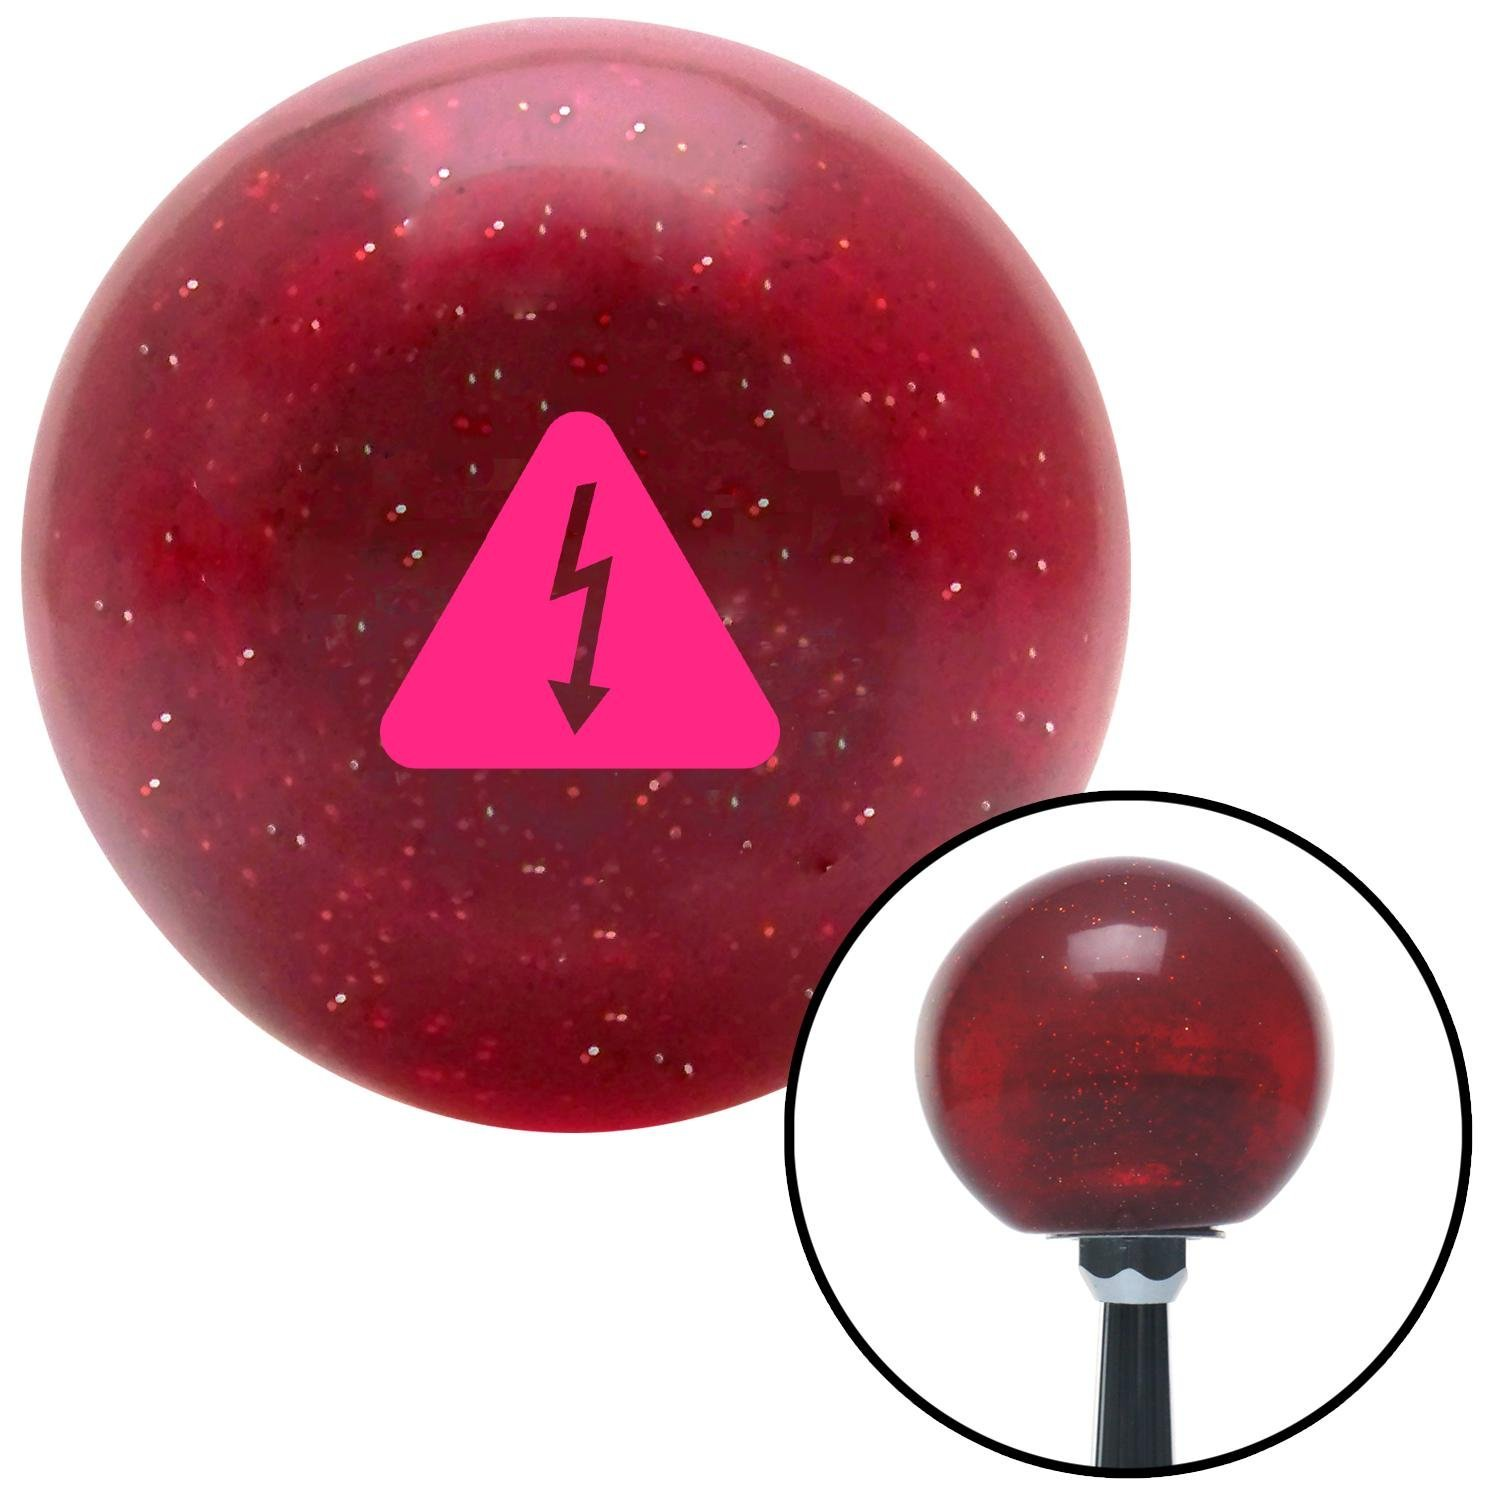 American Shifter 282177 Shift Knob Pink High Voltage Red Metal Flake with M16 x 1.5 Insert